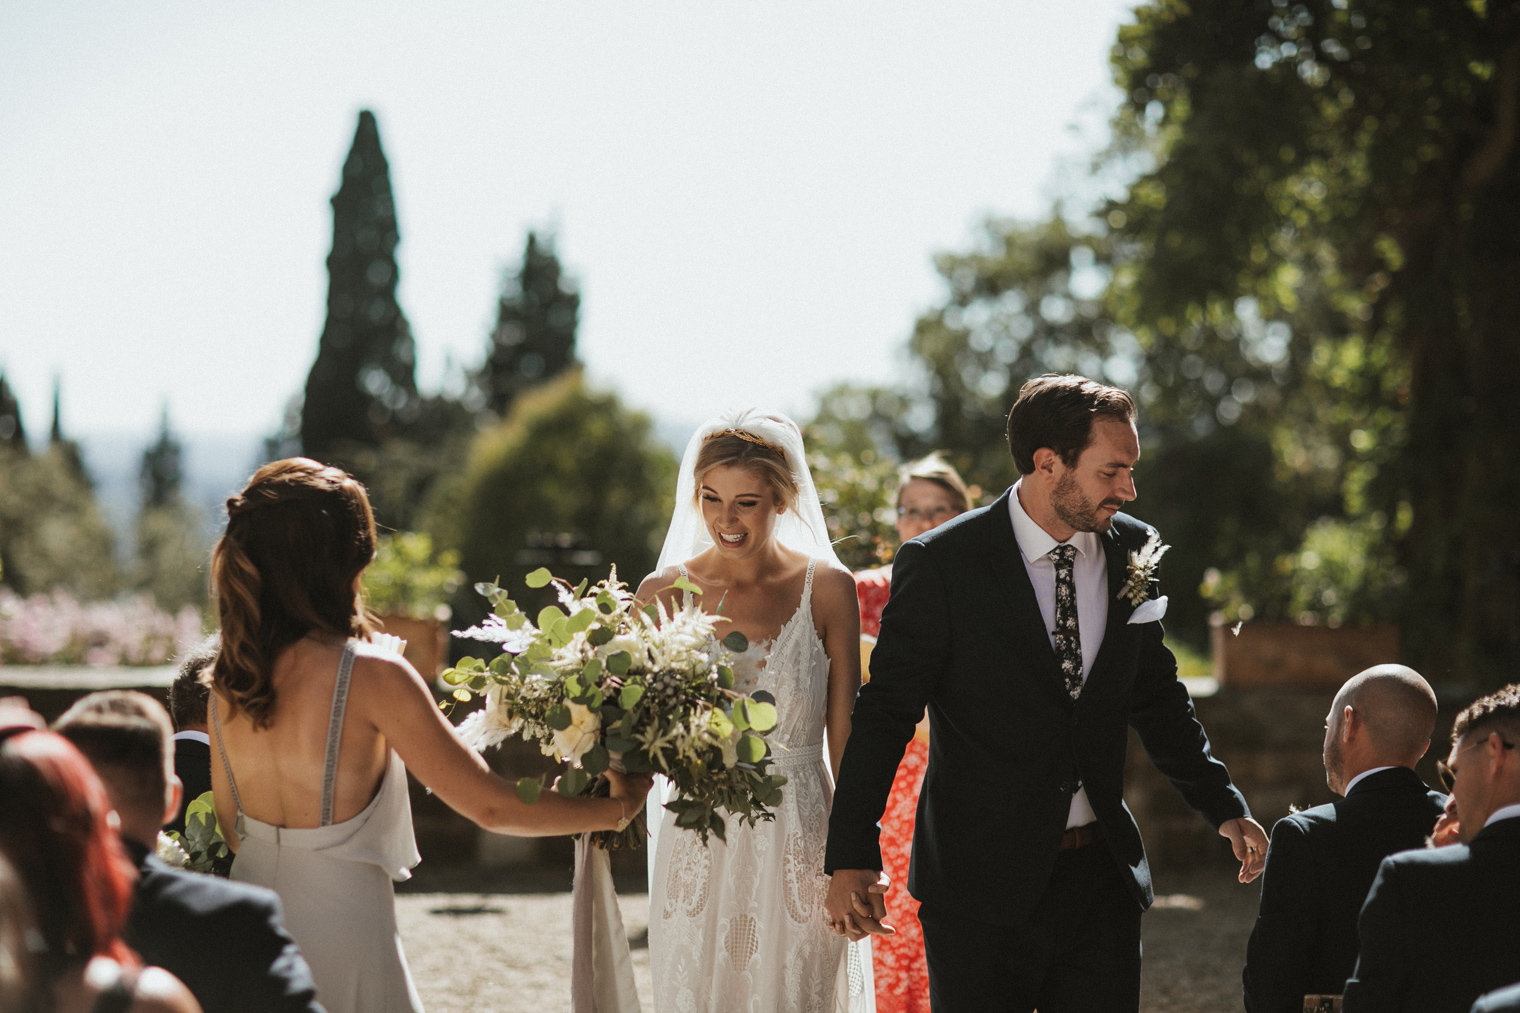 Bride and Groom walking down the aisle after ceremony at Castello Di Vincigliata